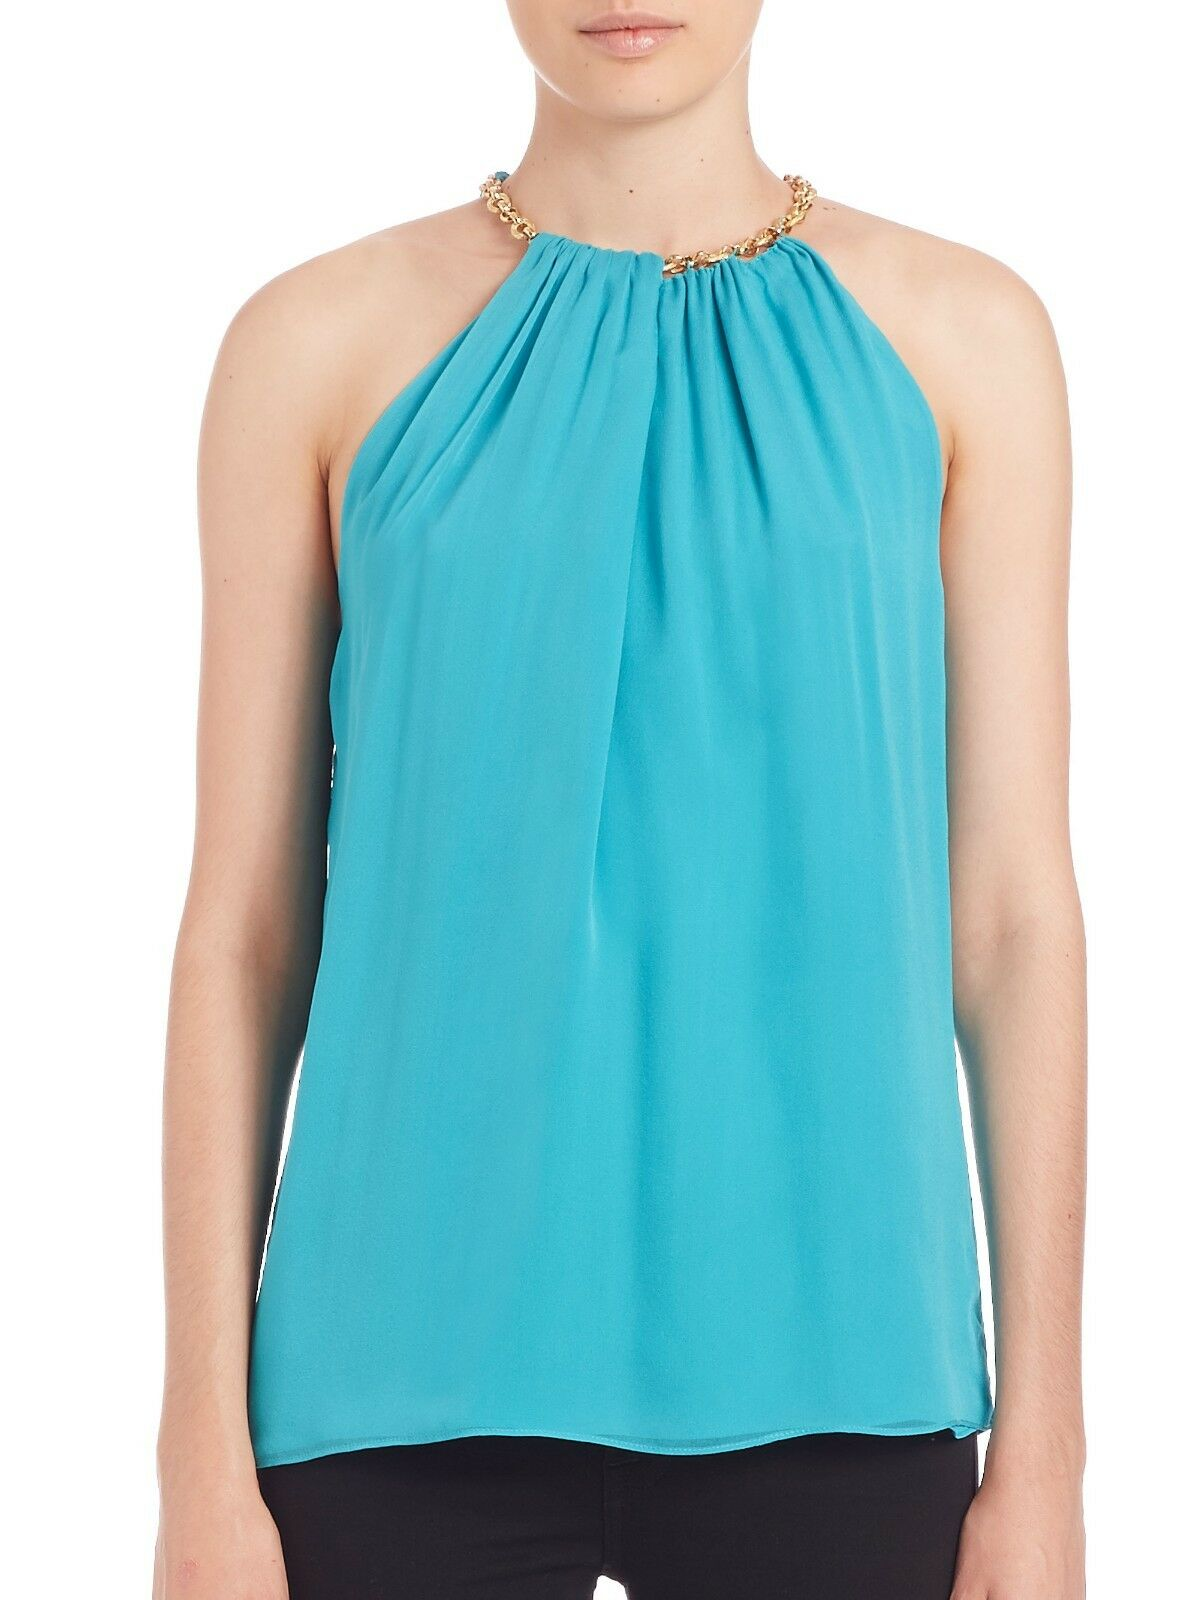 NWT- DVF Aubrey Two golden Chain Trim Silk Top, bluee Lagoon - Size Small